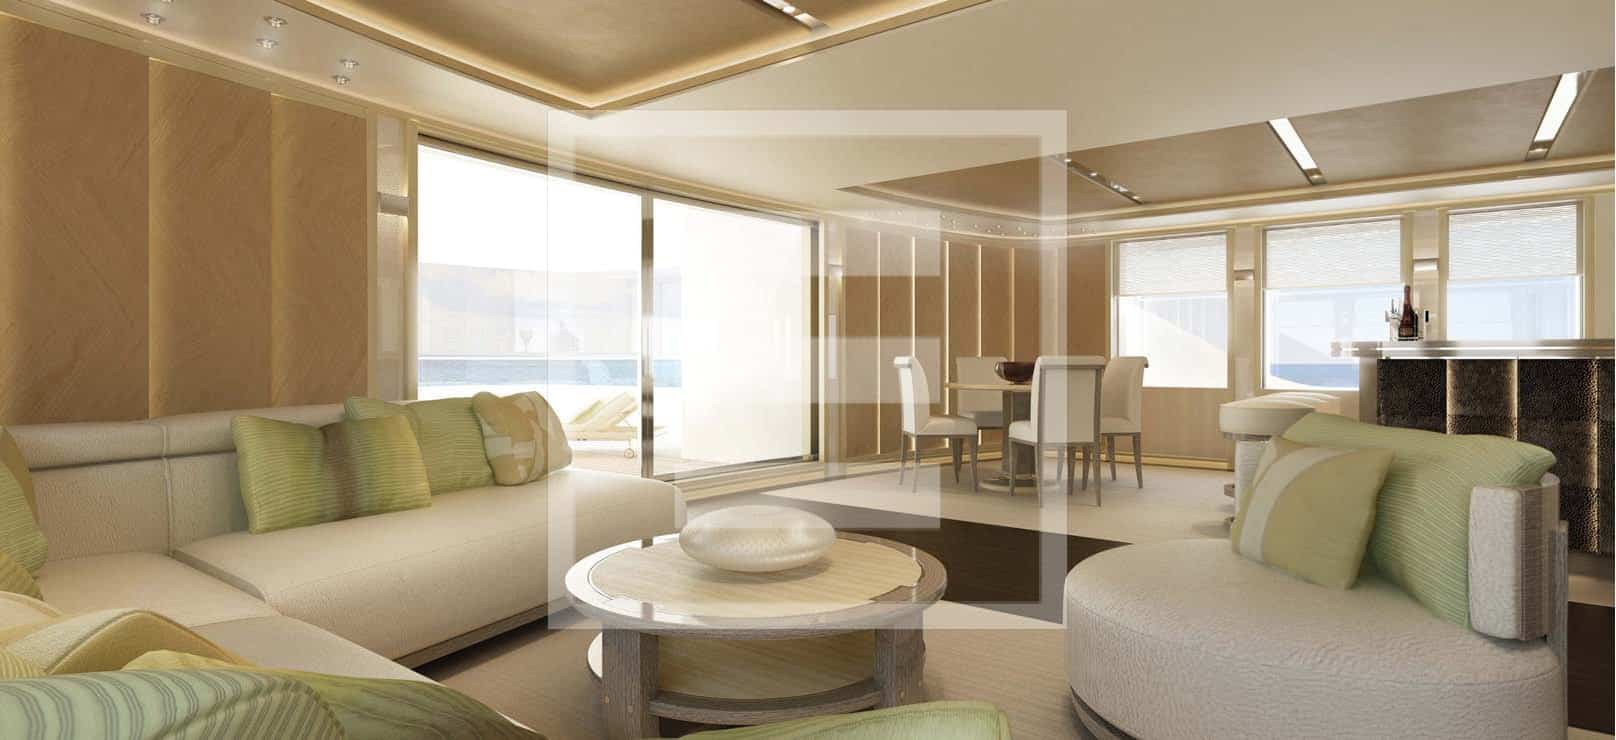 A rendering of the Project Kometa's lounge